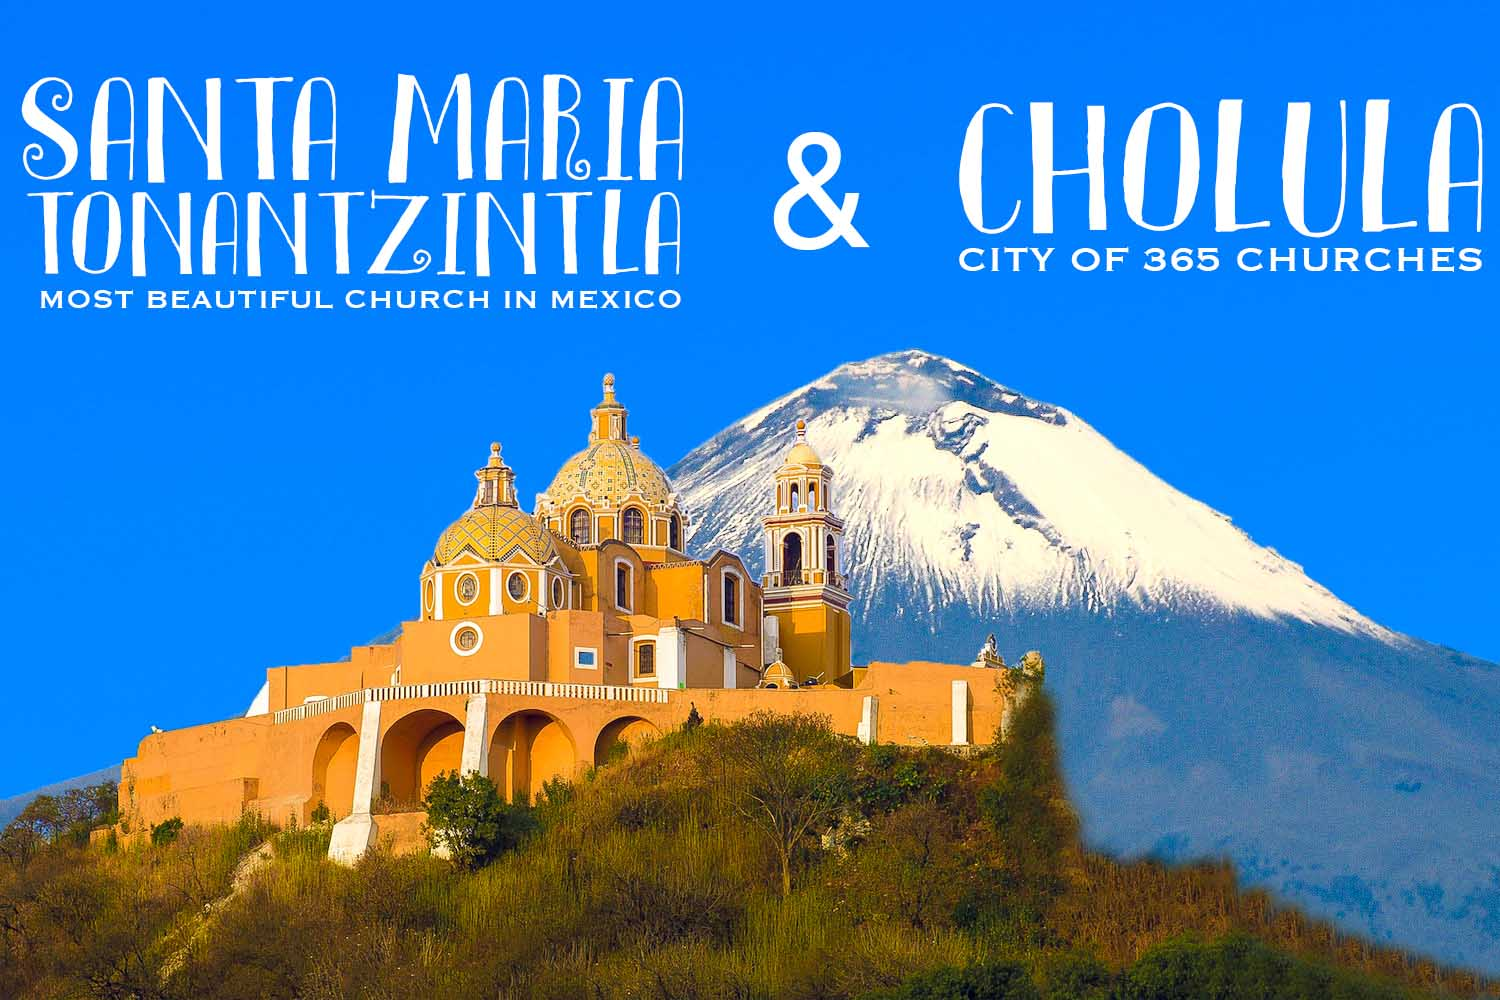 cholula and santa maria tonantzintla header